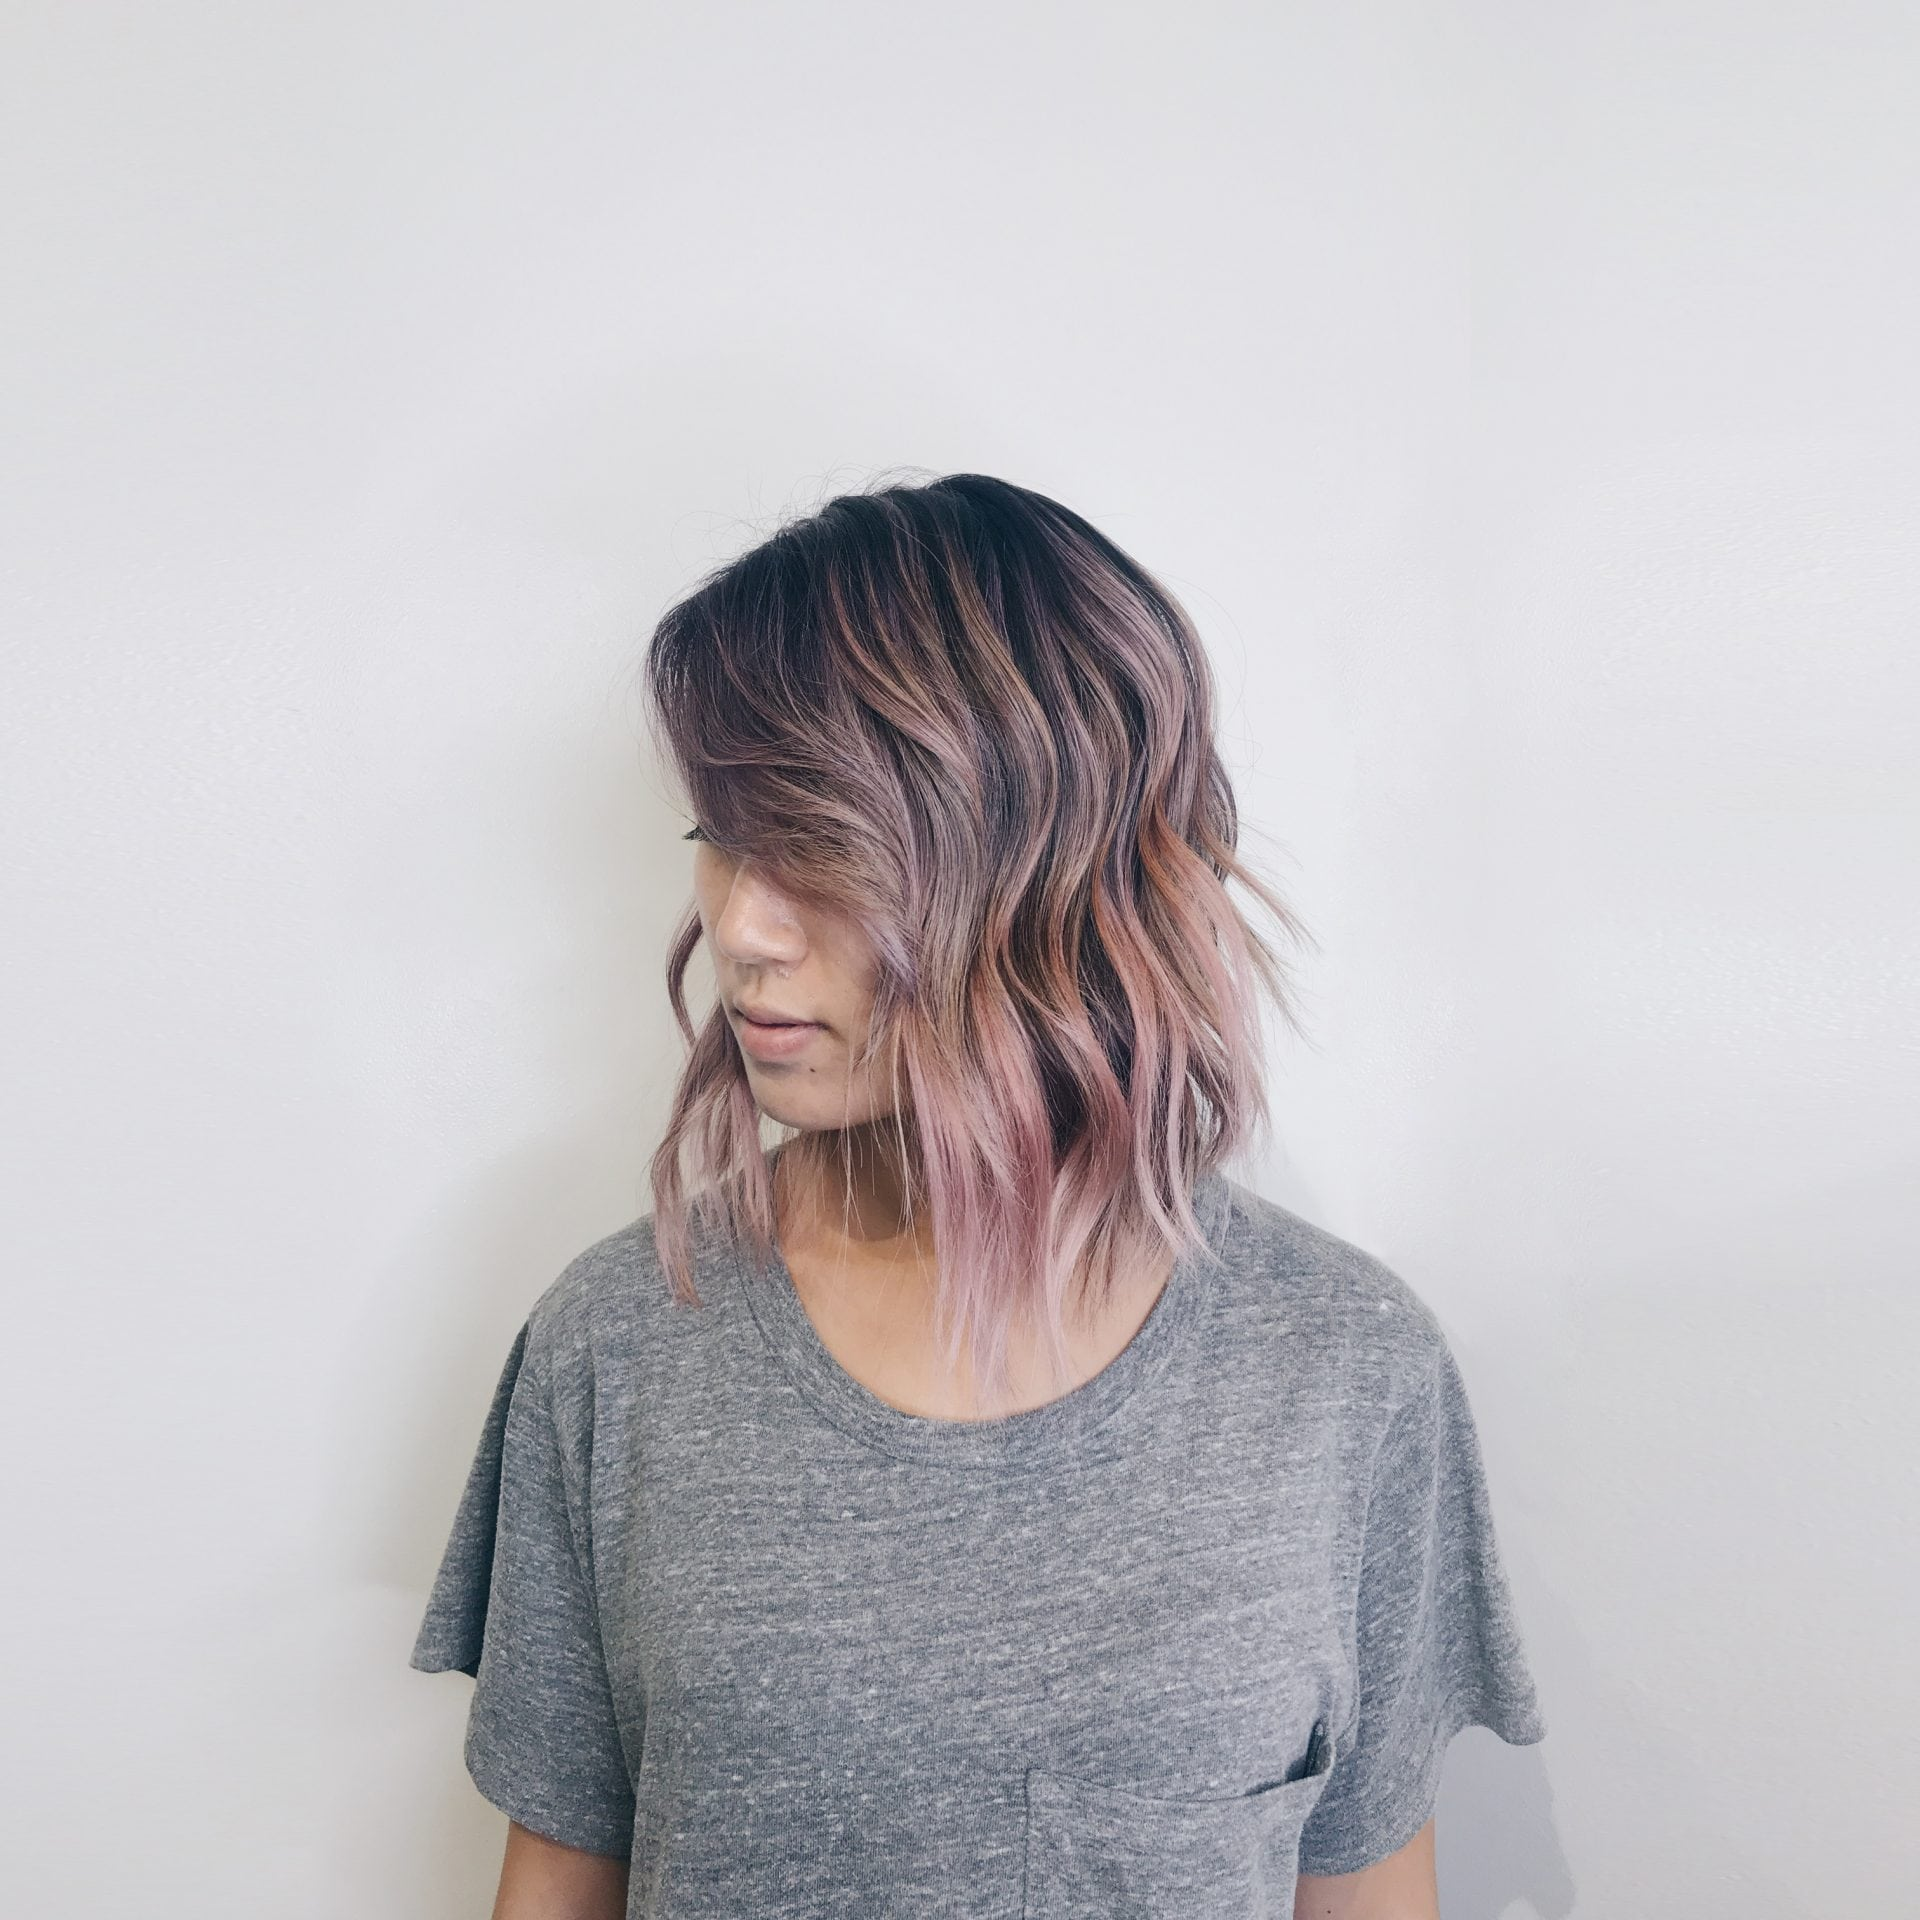 Asian hair styling tips